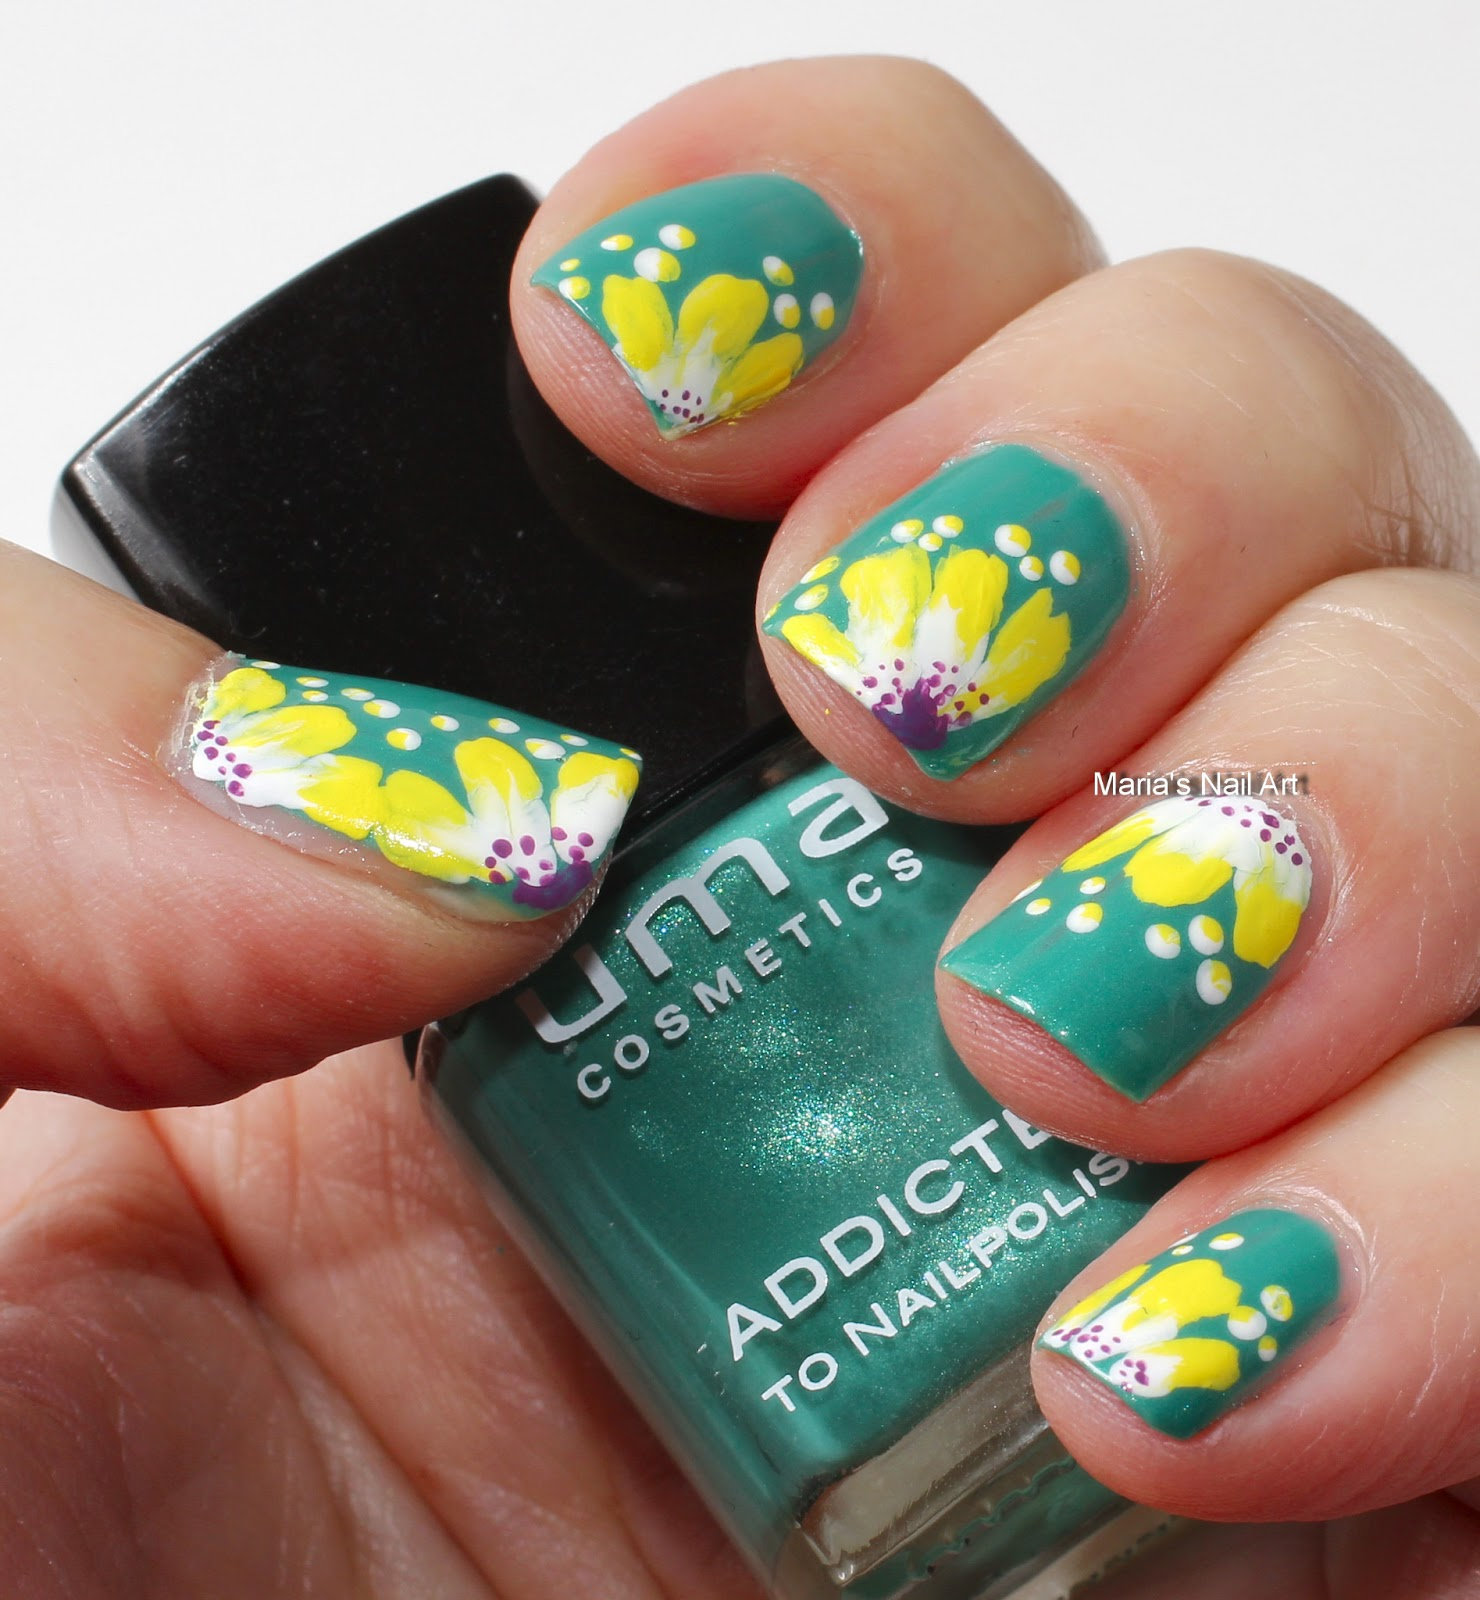 Marias Nail Art And Polish Blog Subtle Floral Nail Art On: Marias Nail Art And Polish Blog: Peek-a-boo One-stokes On Jade